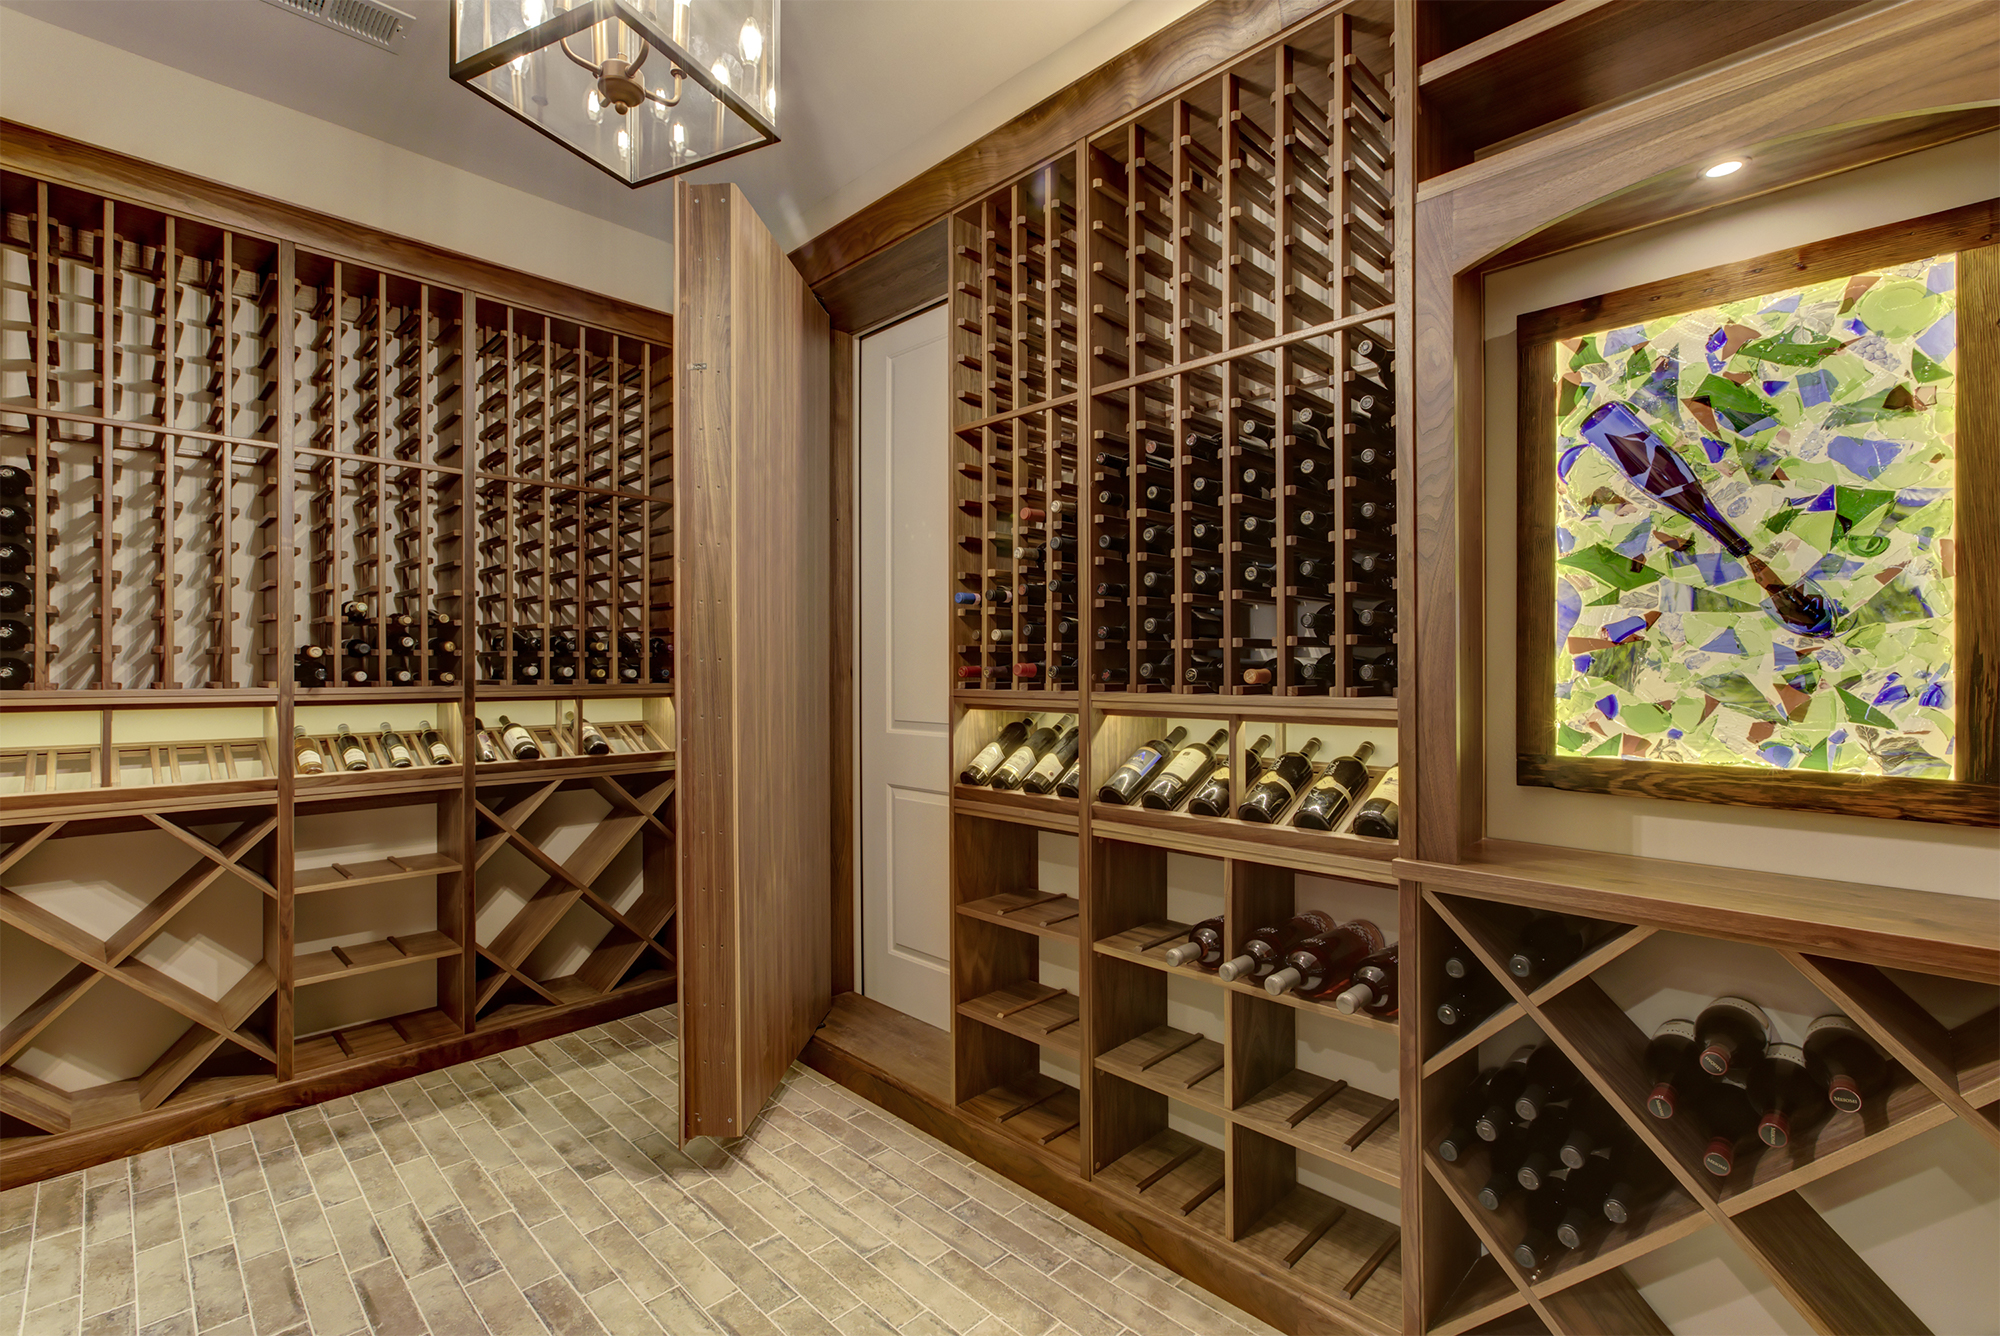 wine storage area with artwork and chandelier